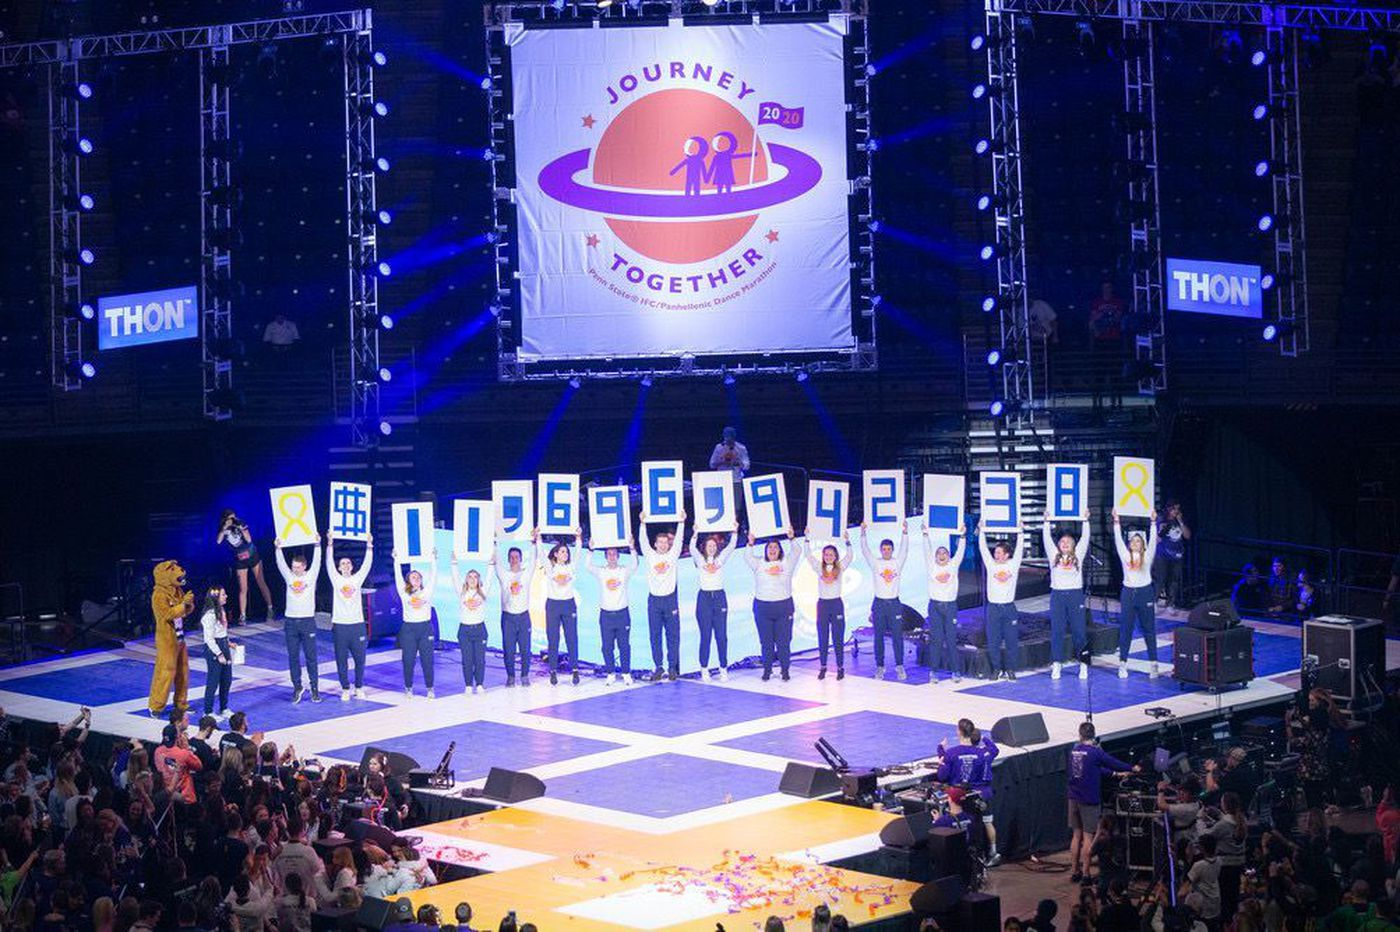 Penn State's THON brings in nearly $11.7 million to fight pediatric cancer